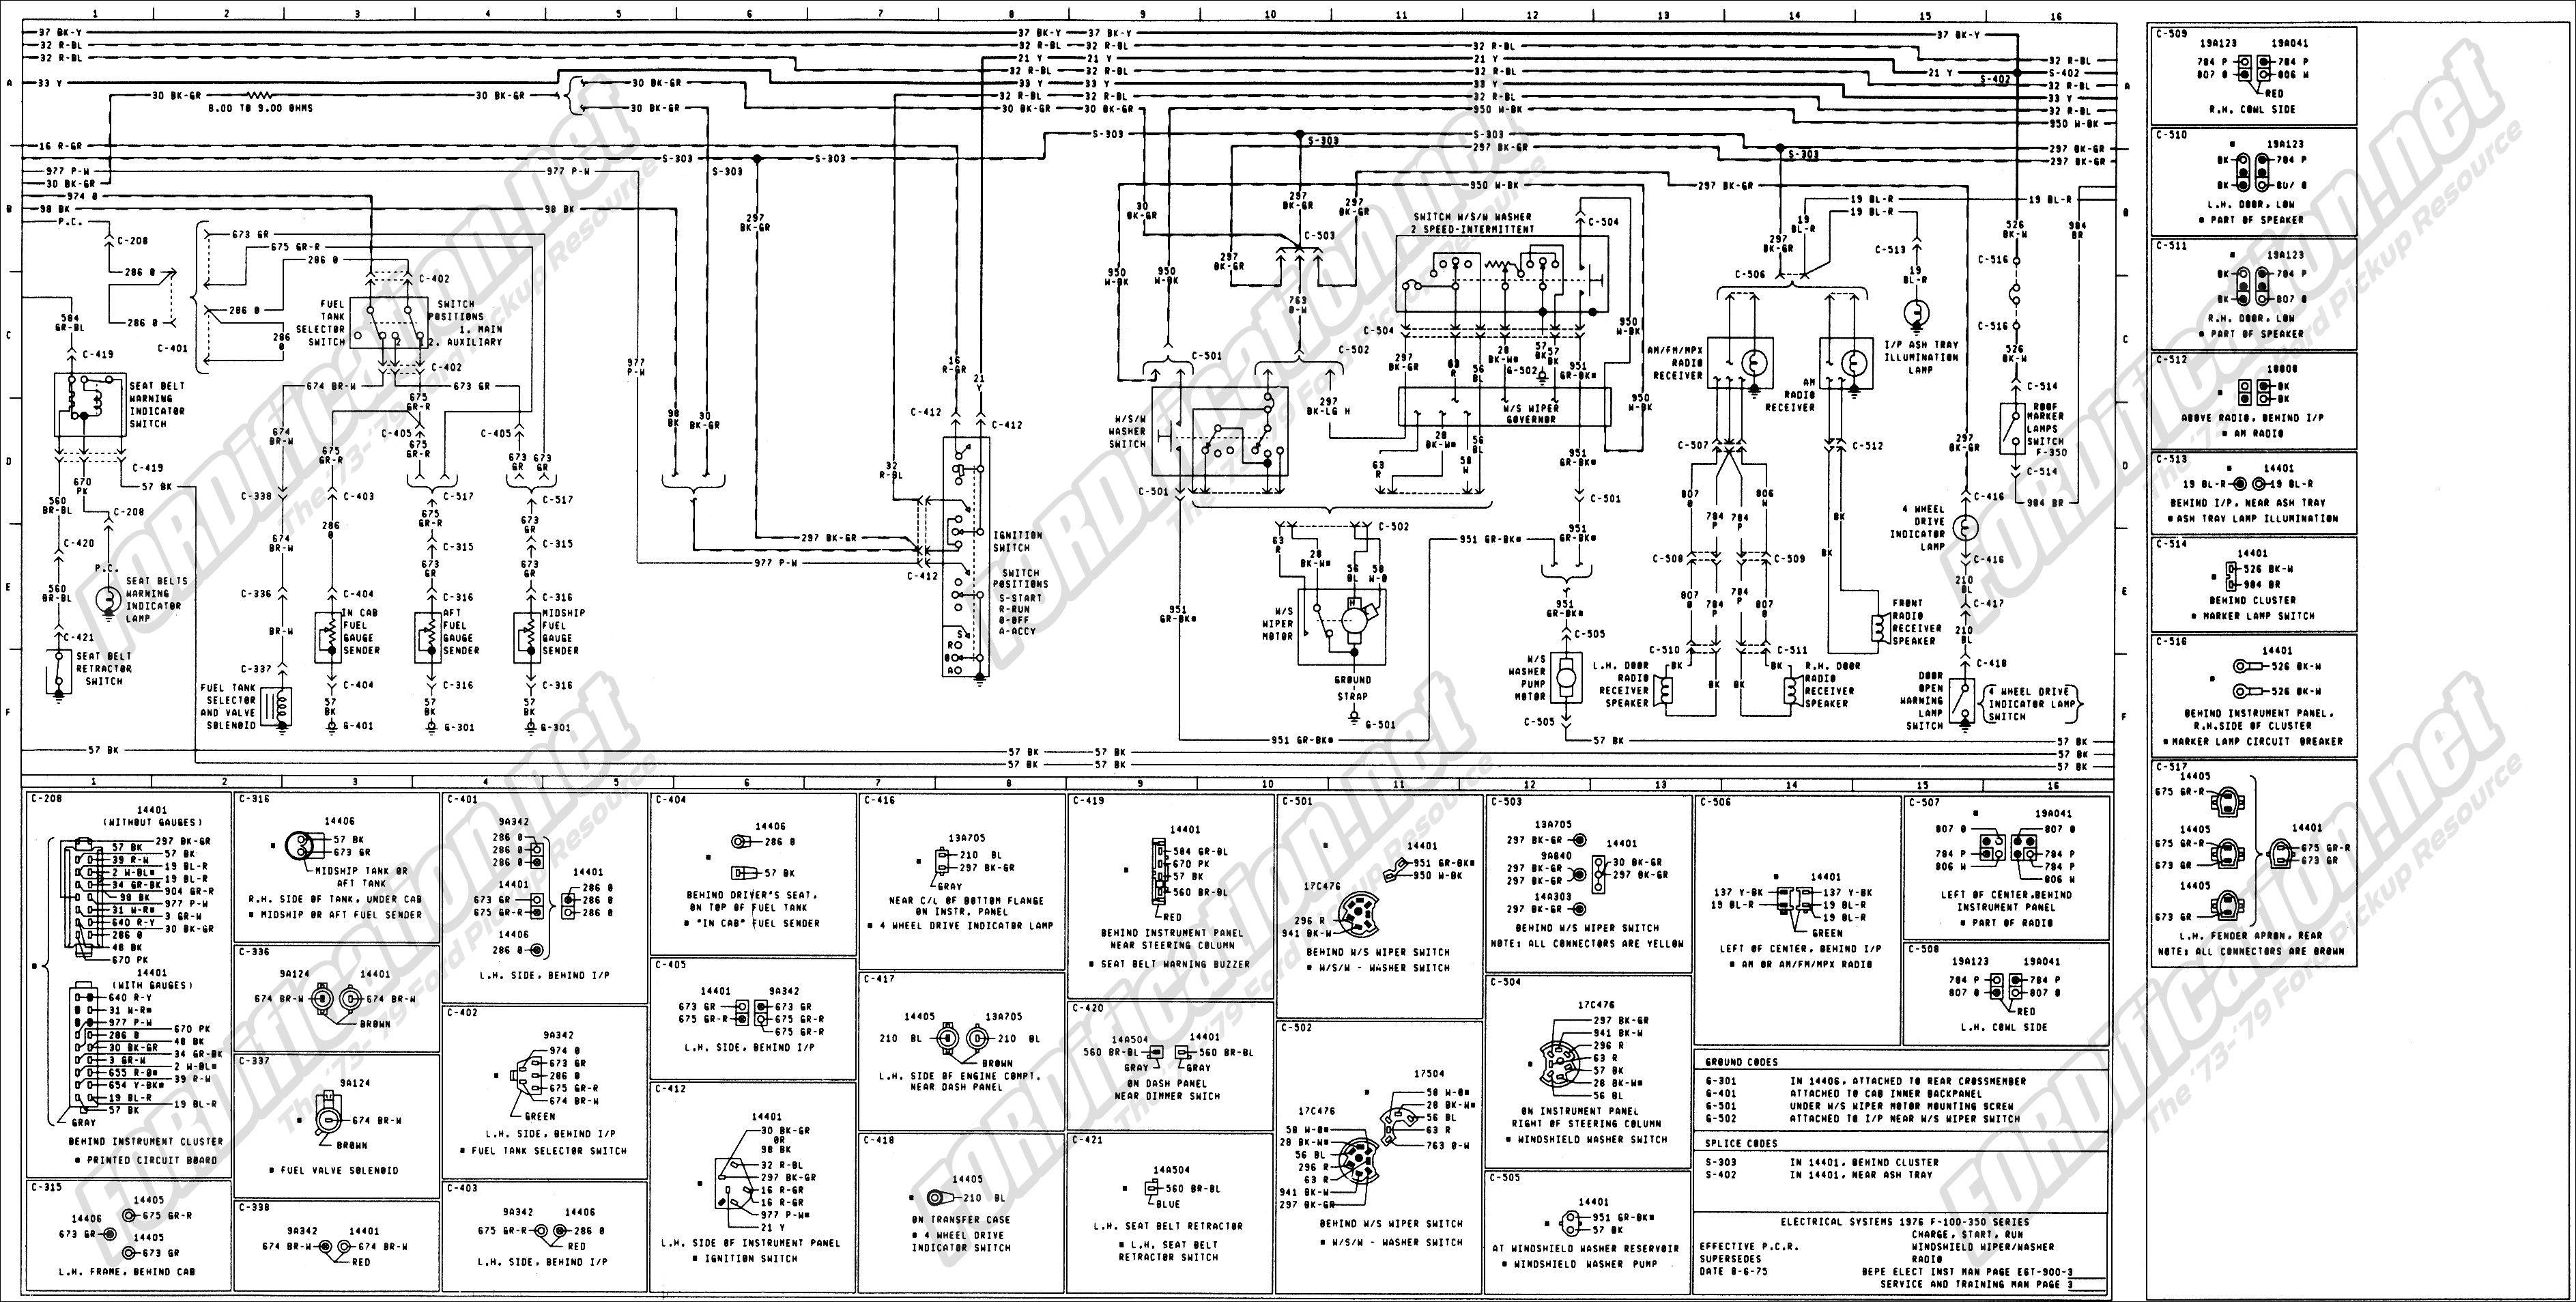 1995 Ford Truck Transmission Diagram Wiring Schematic Electrical Further 1978 On 1950 Gauges 1993 F 250 7 5l Electricity Trucks Schematics